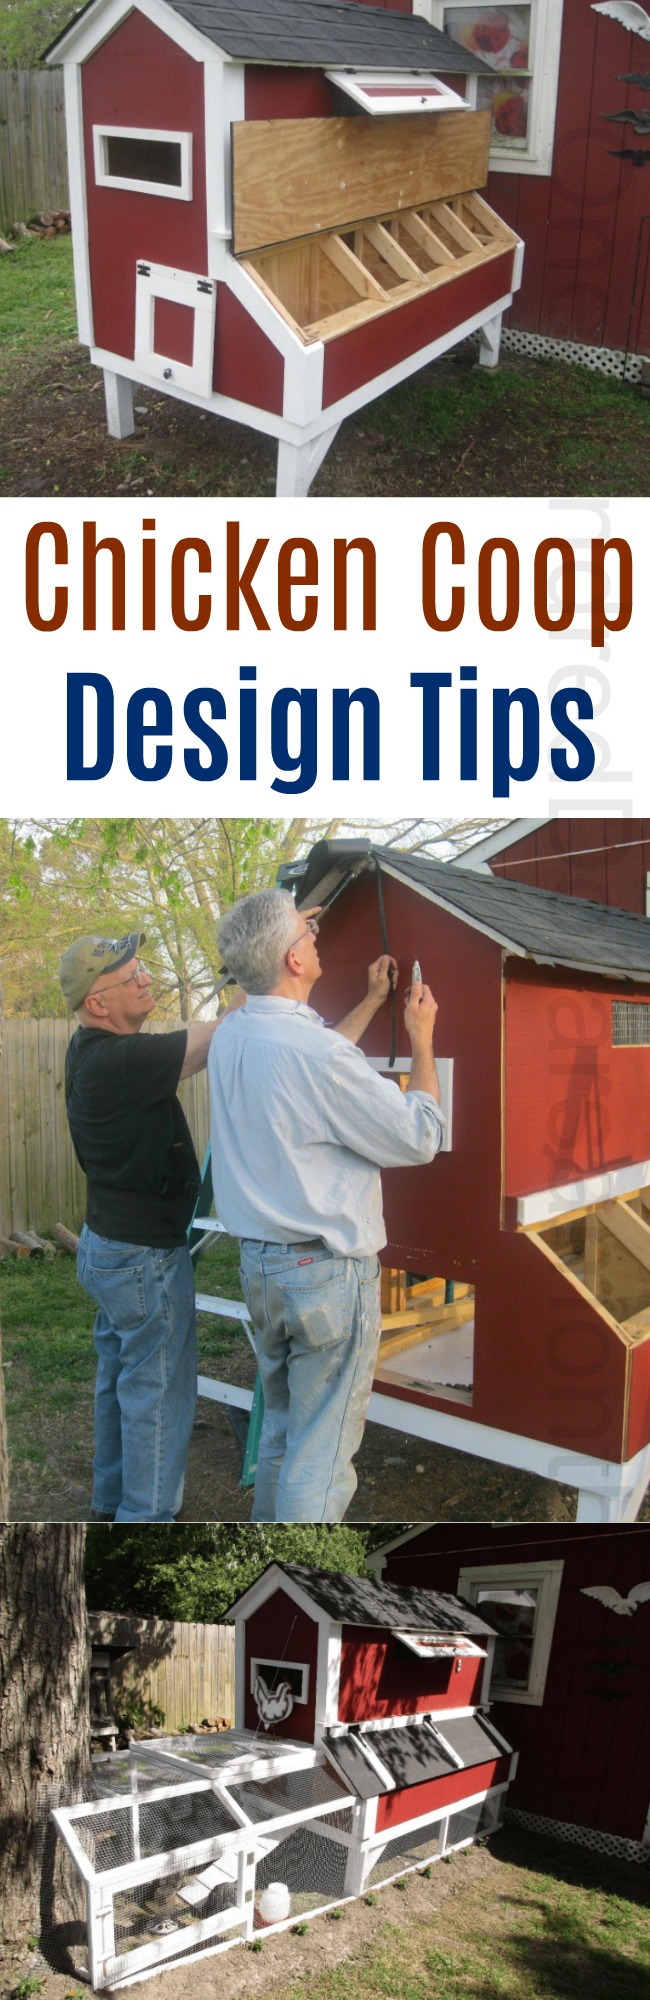 Mavis Mail – Bruce From Norfolk, VA Sends in His Chicken Coop Photos and Lot's of Building Tips